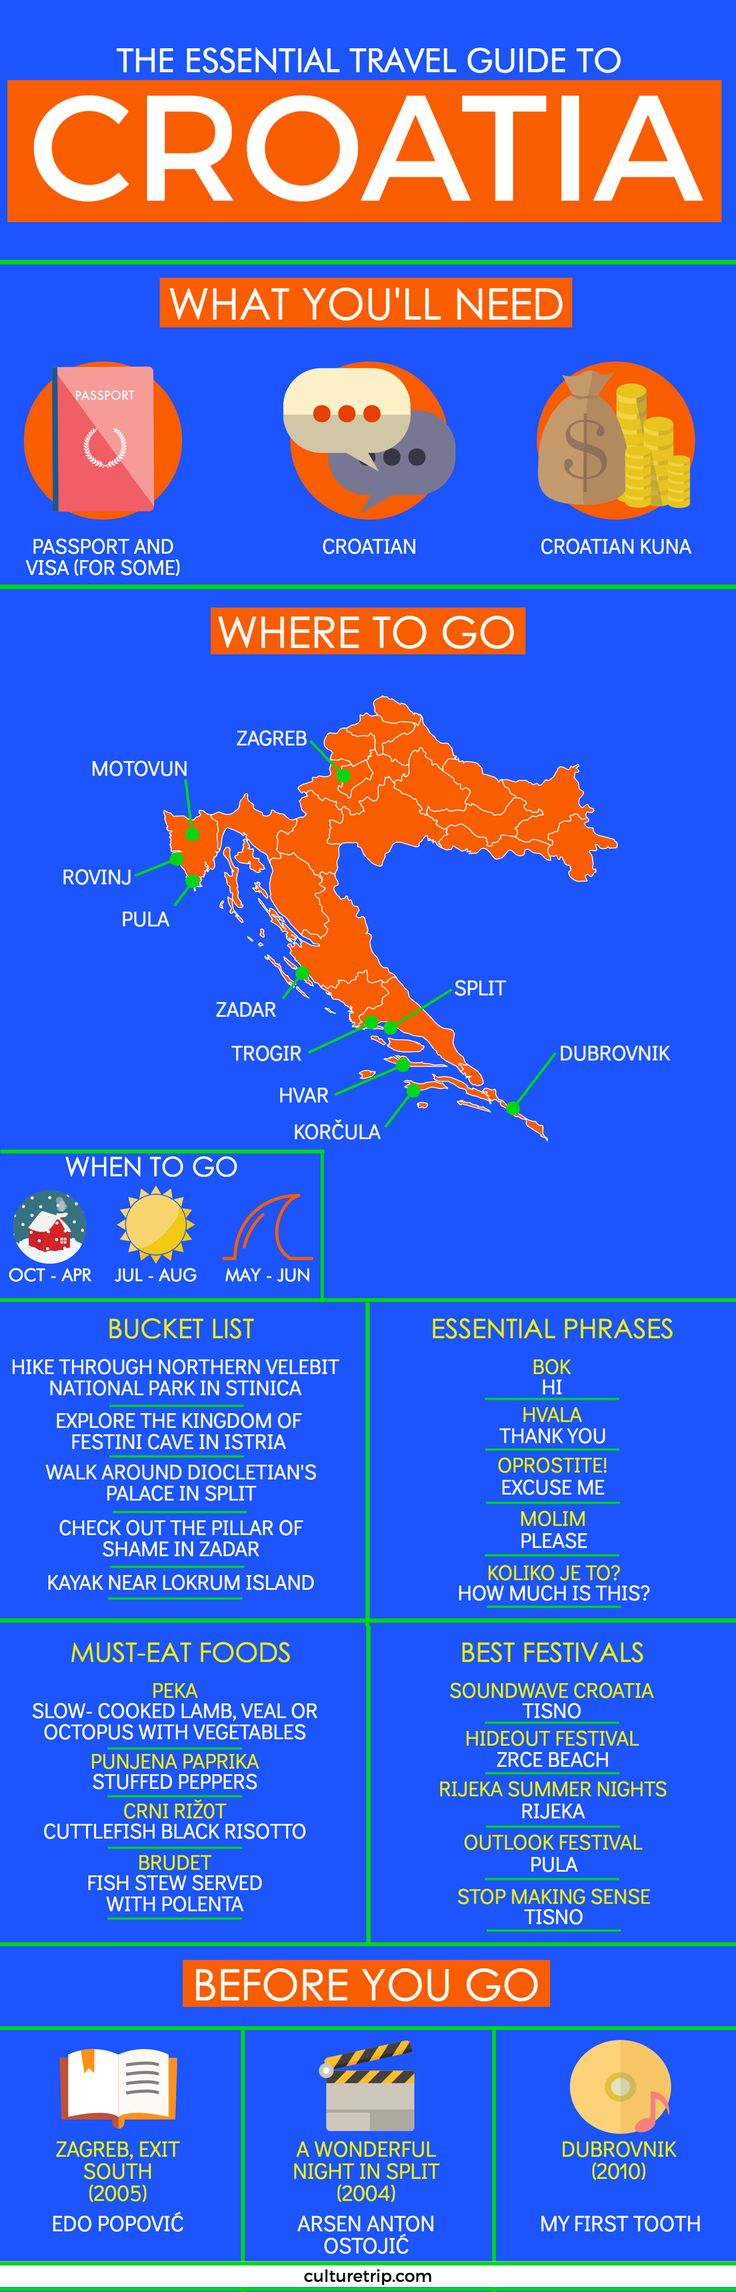 The Best Travel, Food and Culture Guides for Croatia - Culture Trip's Essential Travel Guide to Croatia.